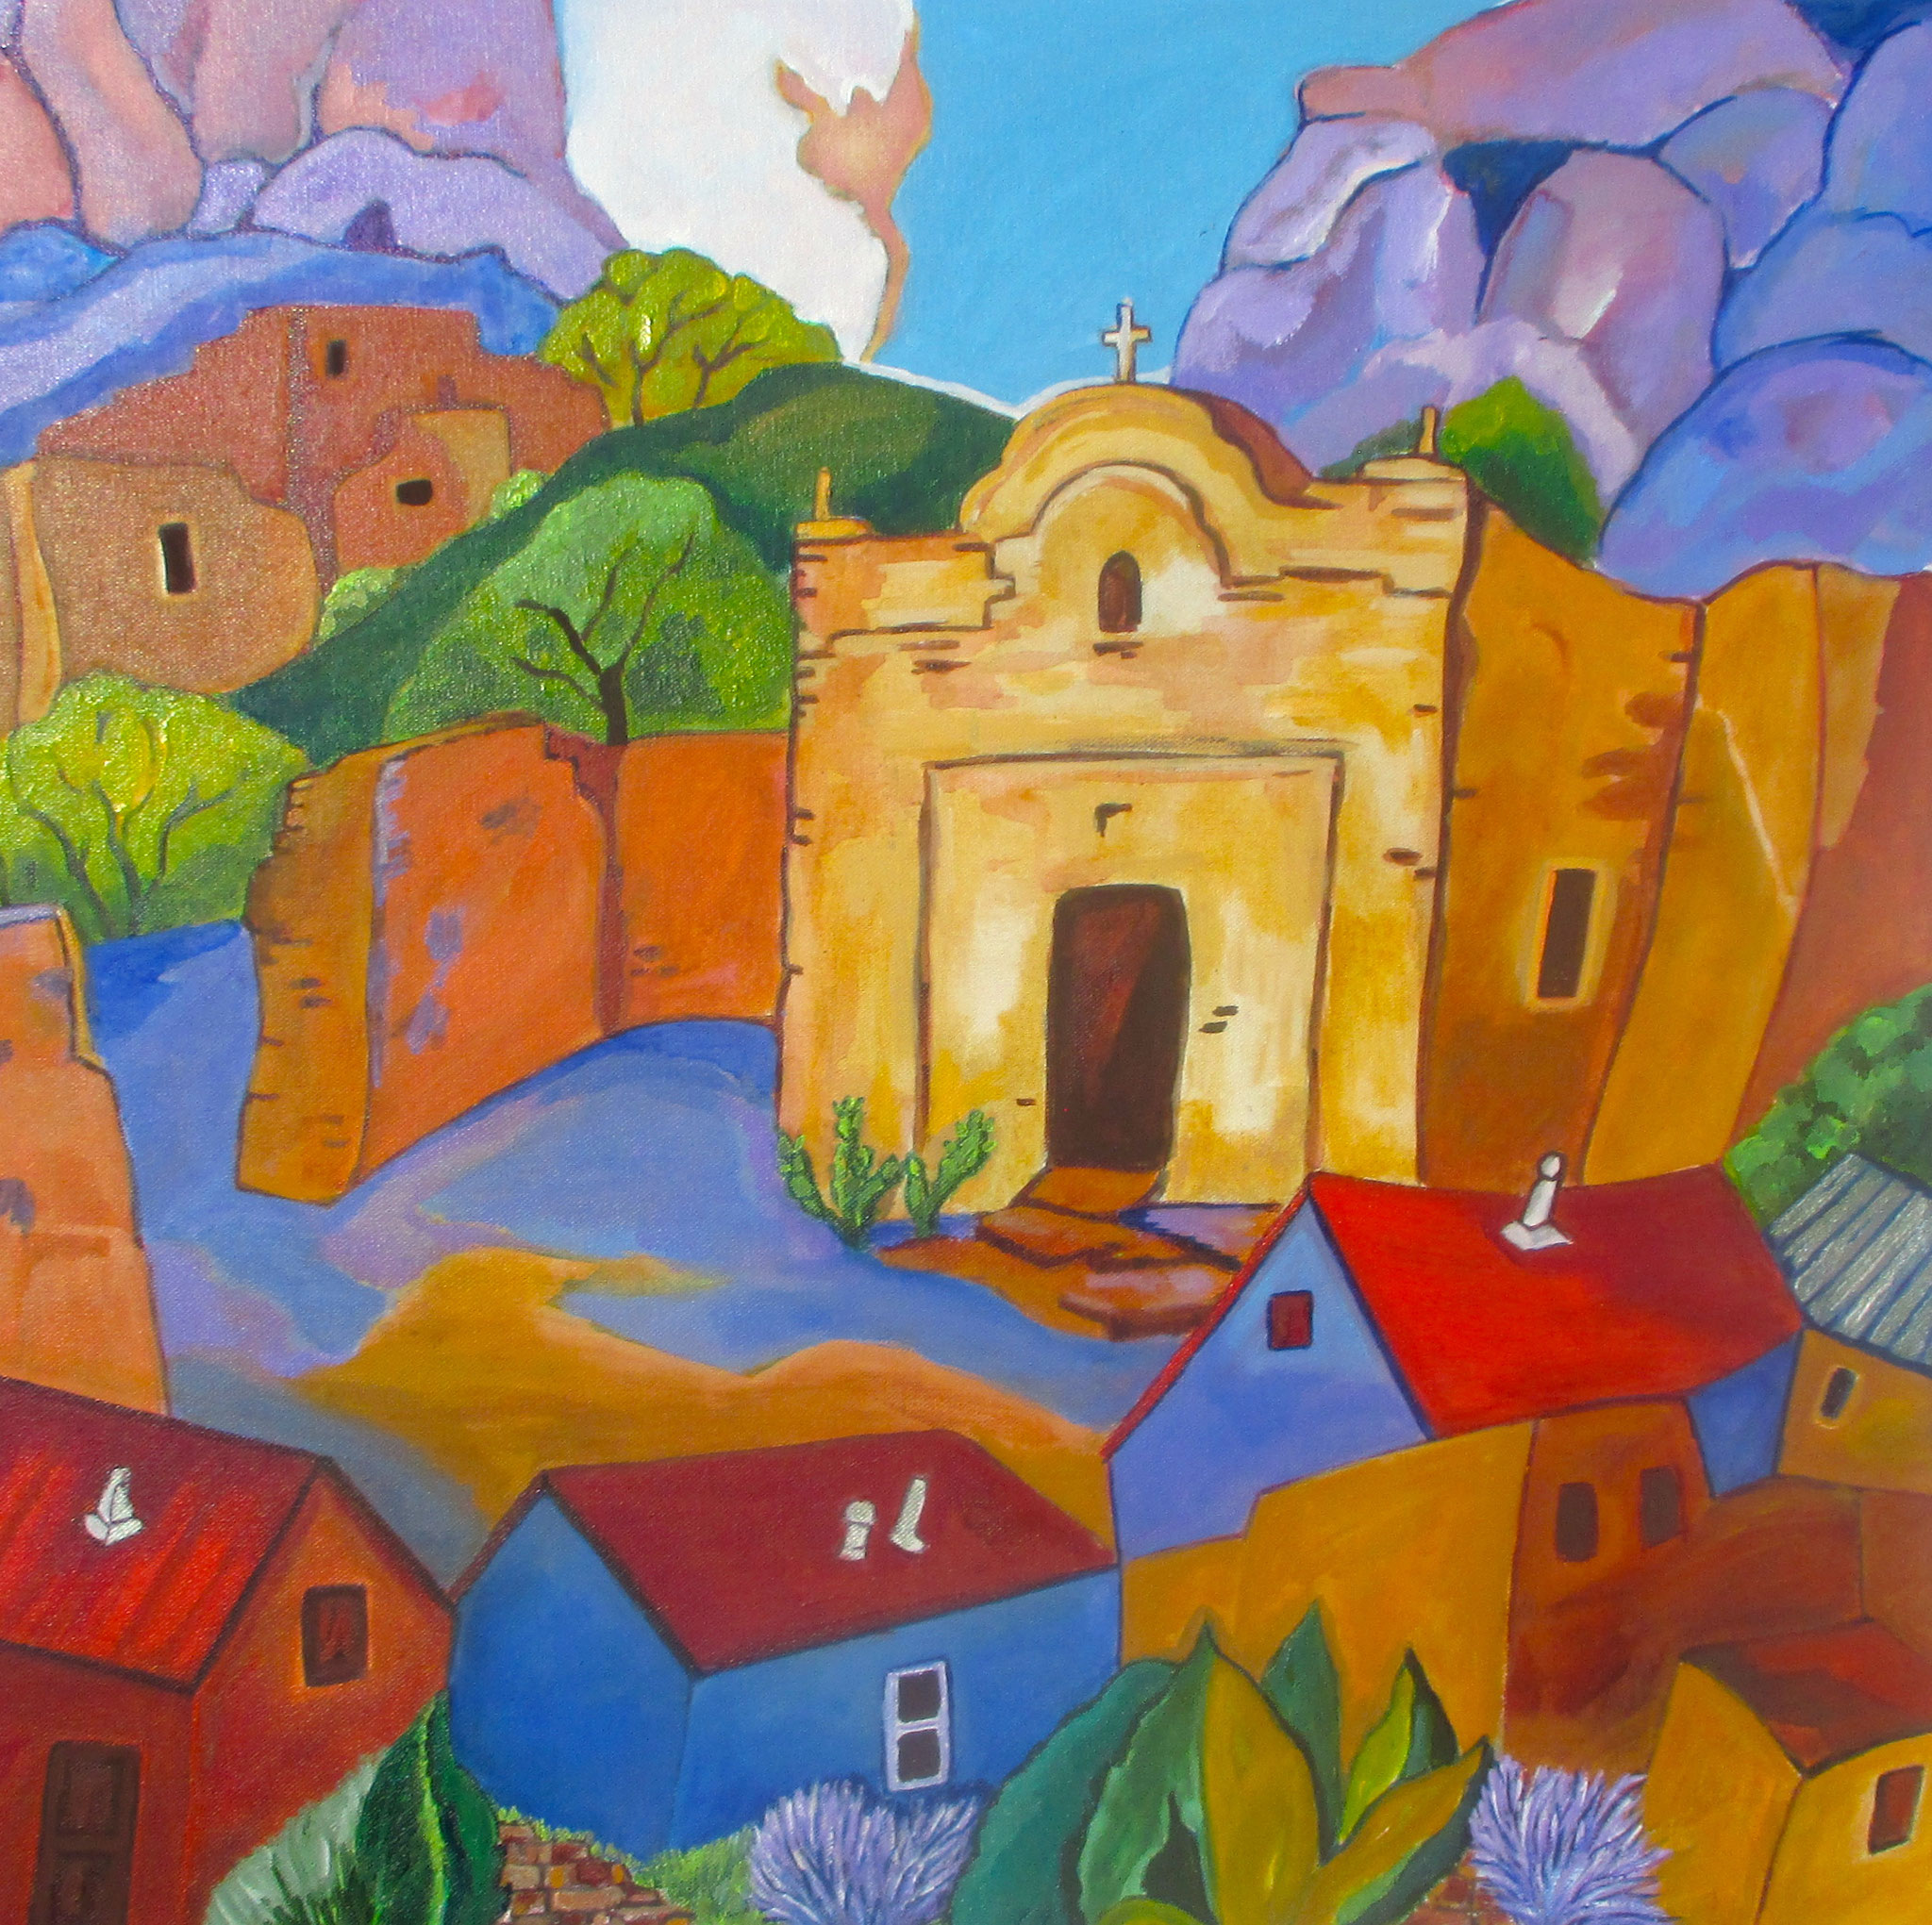 Anglo Village, acrylic on canvas, 24 x 24, SOLD